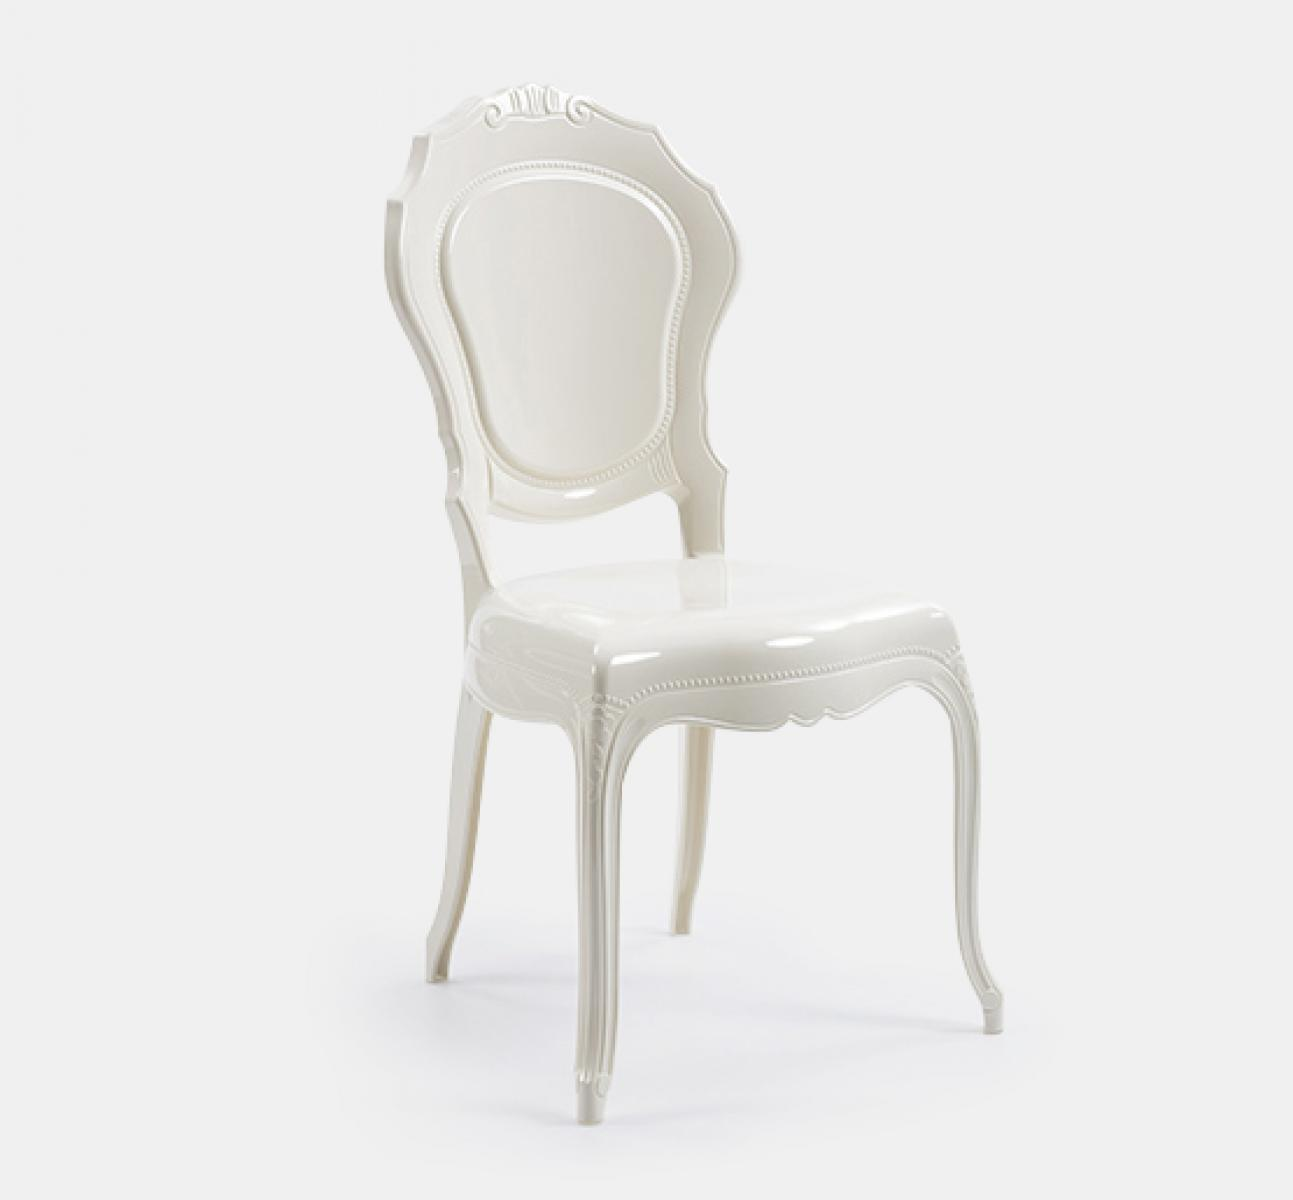 Clic Chair - White | UHS